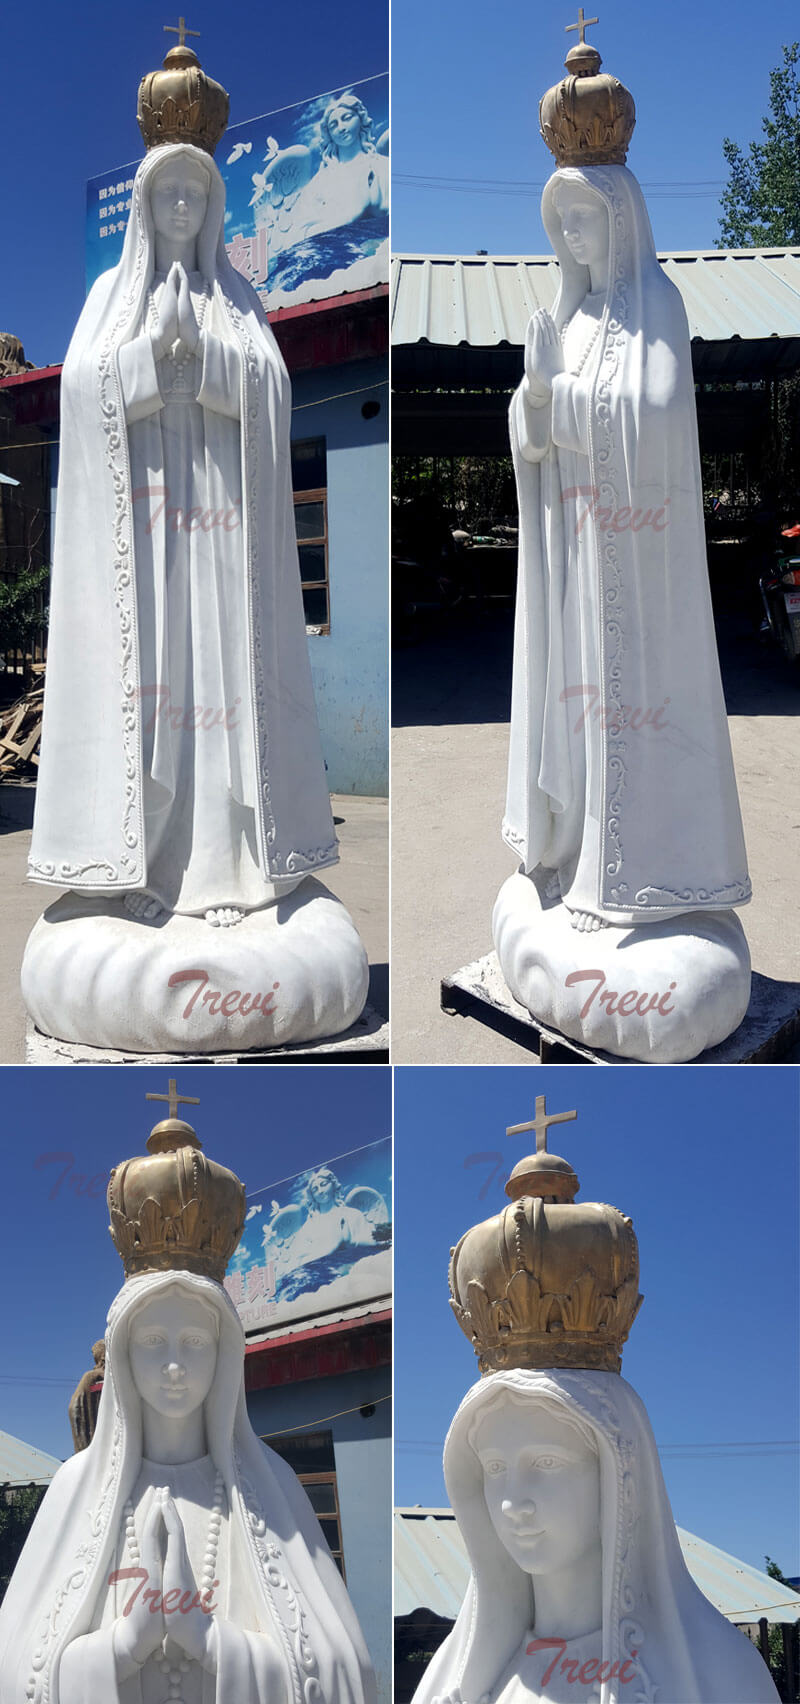 Catholic marble outdoor statues lady of fatima portugal with crown designs